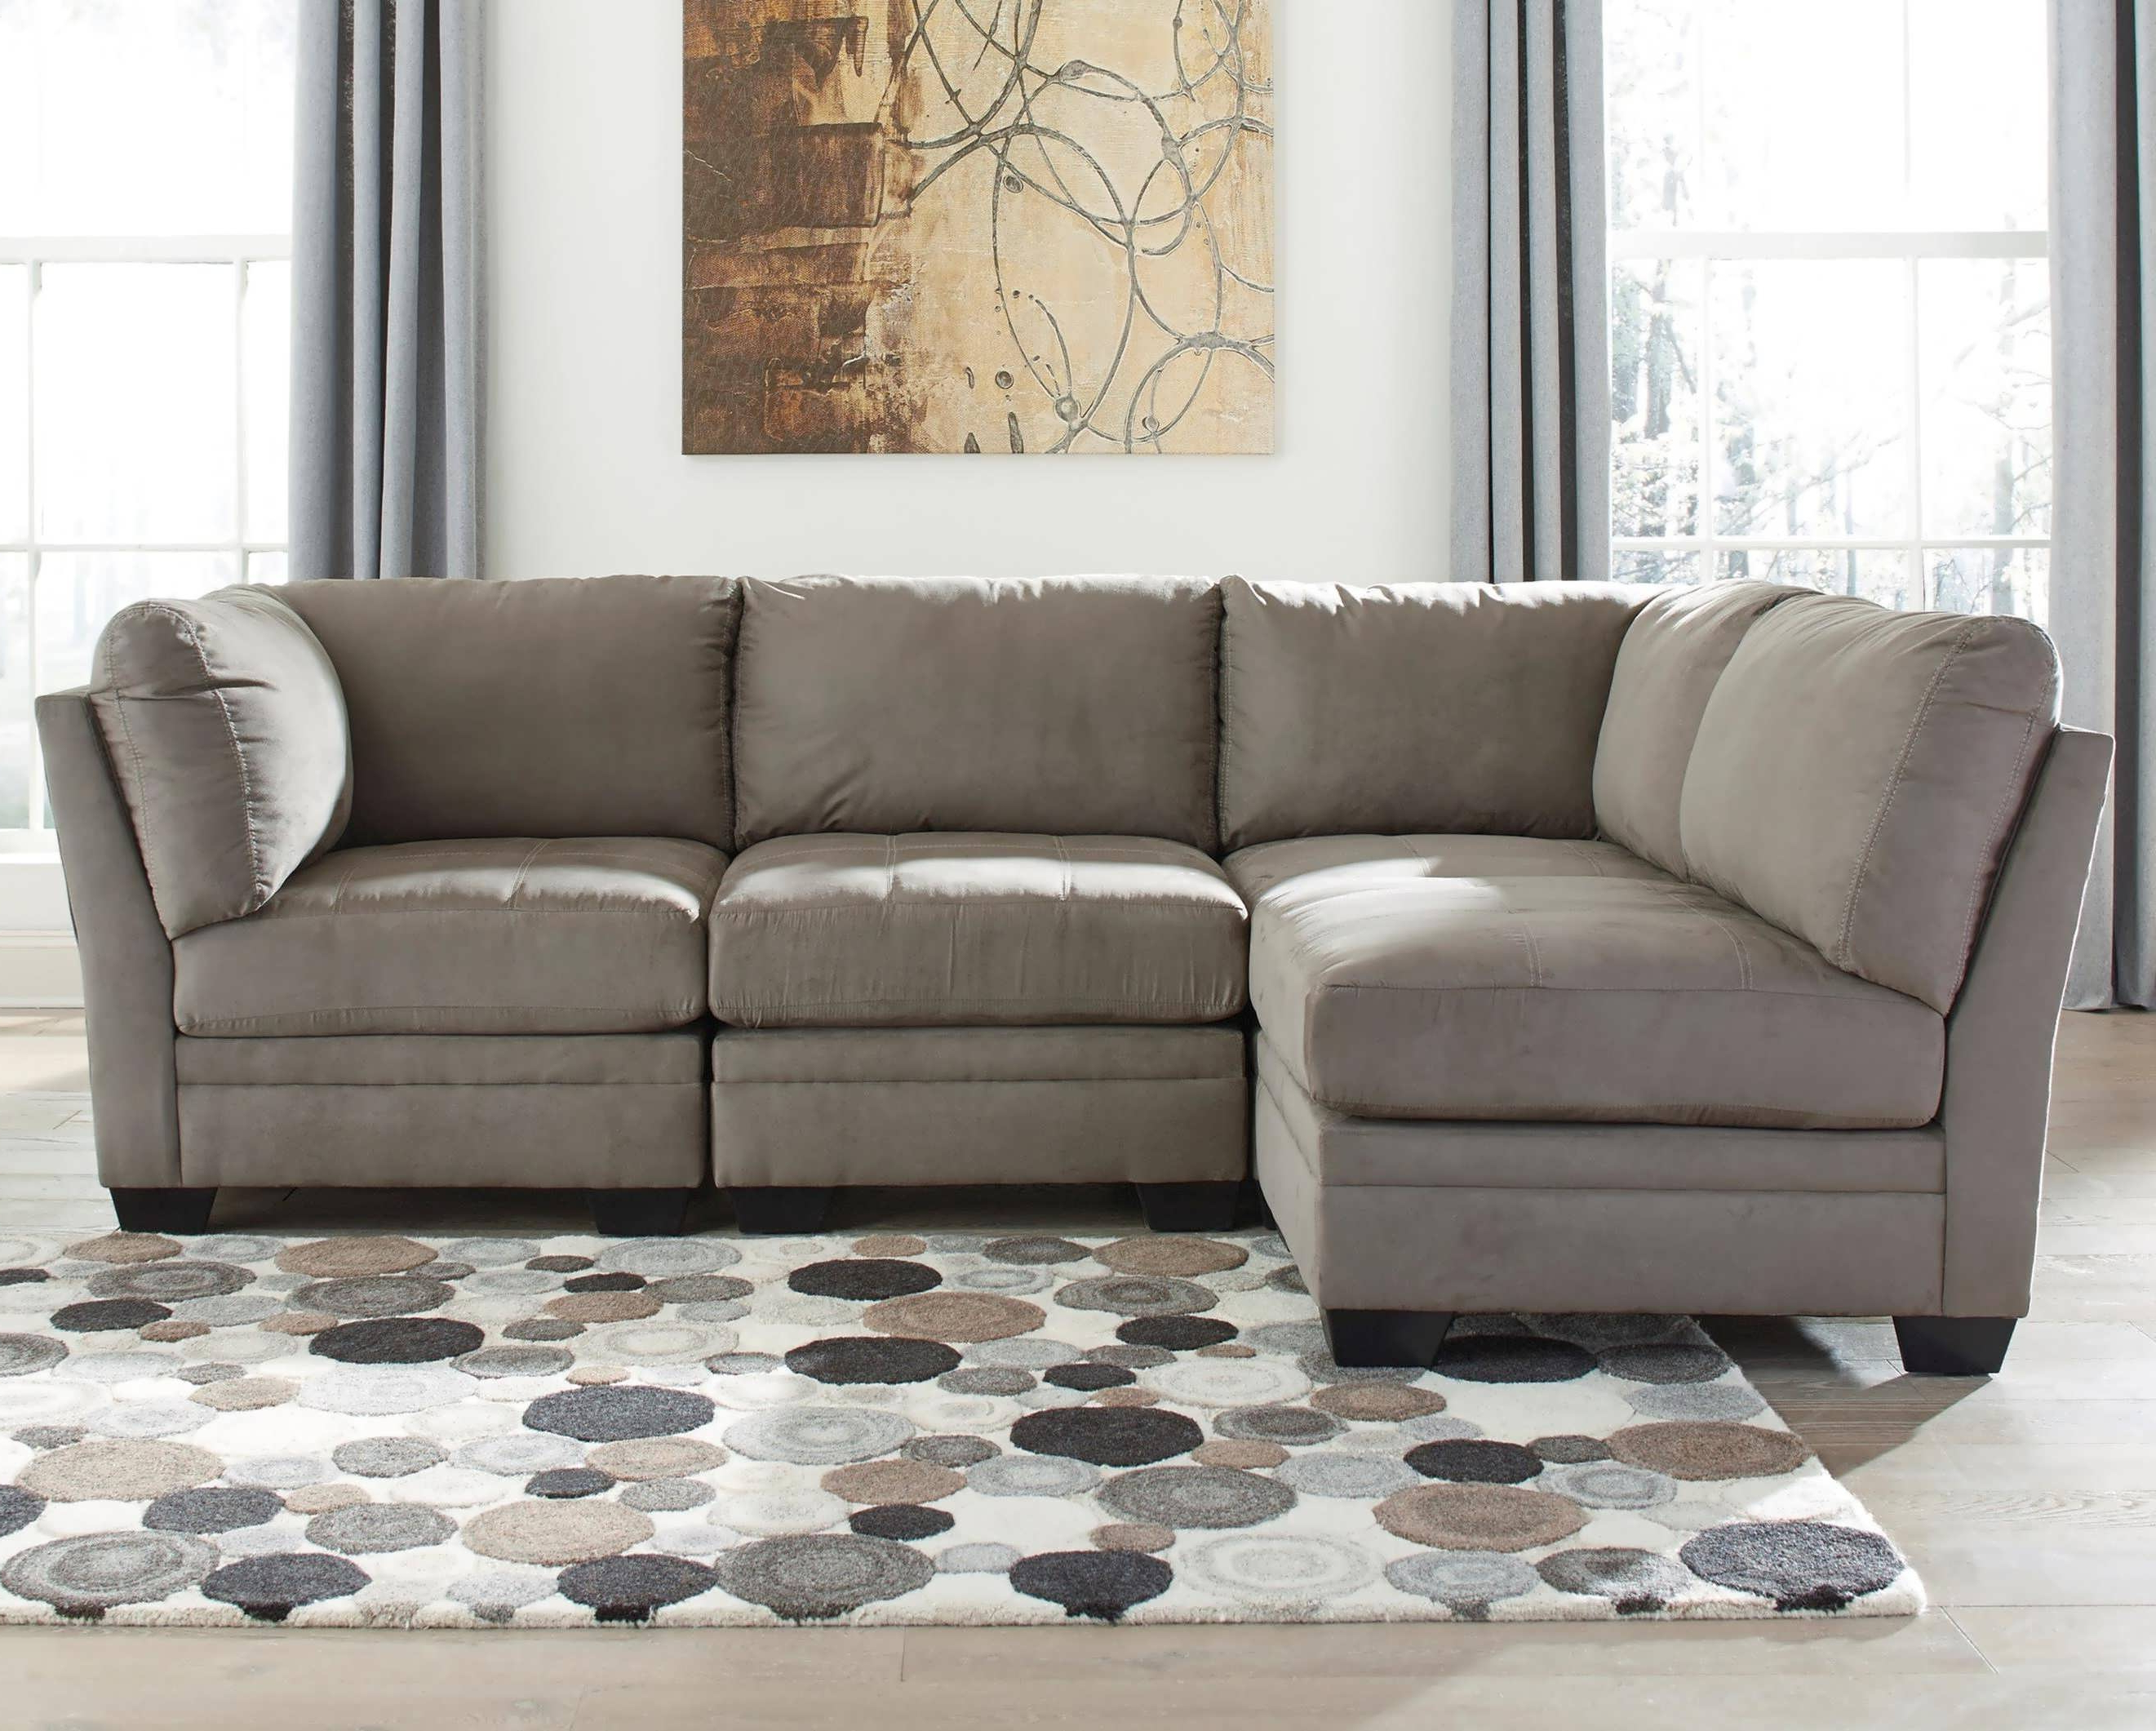 Preferred Two Piece Sectional Sofa Covers Everest With And Chaises Ashley With Regard To Meyer 3 Piece Sectionals With Laf Chaise (View 13 of 20)